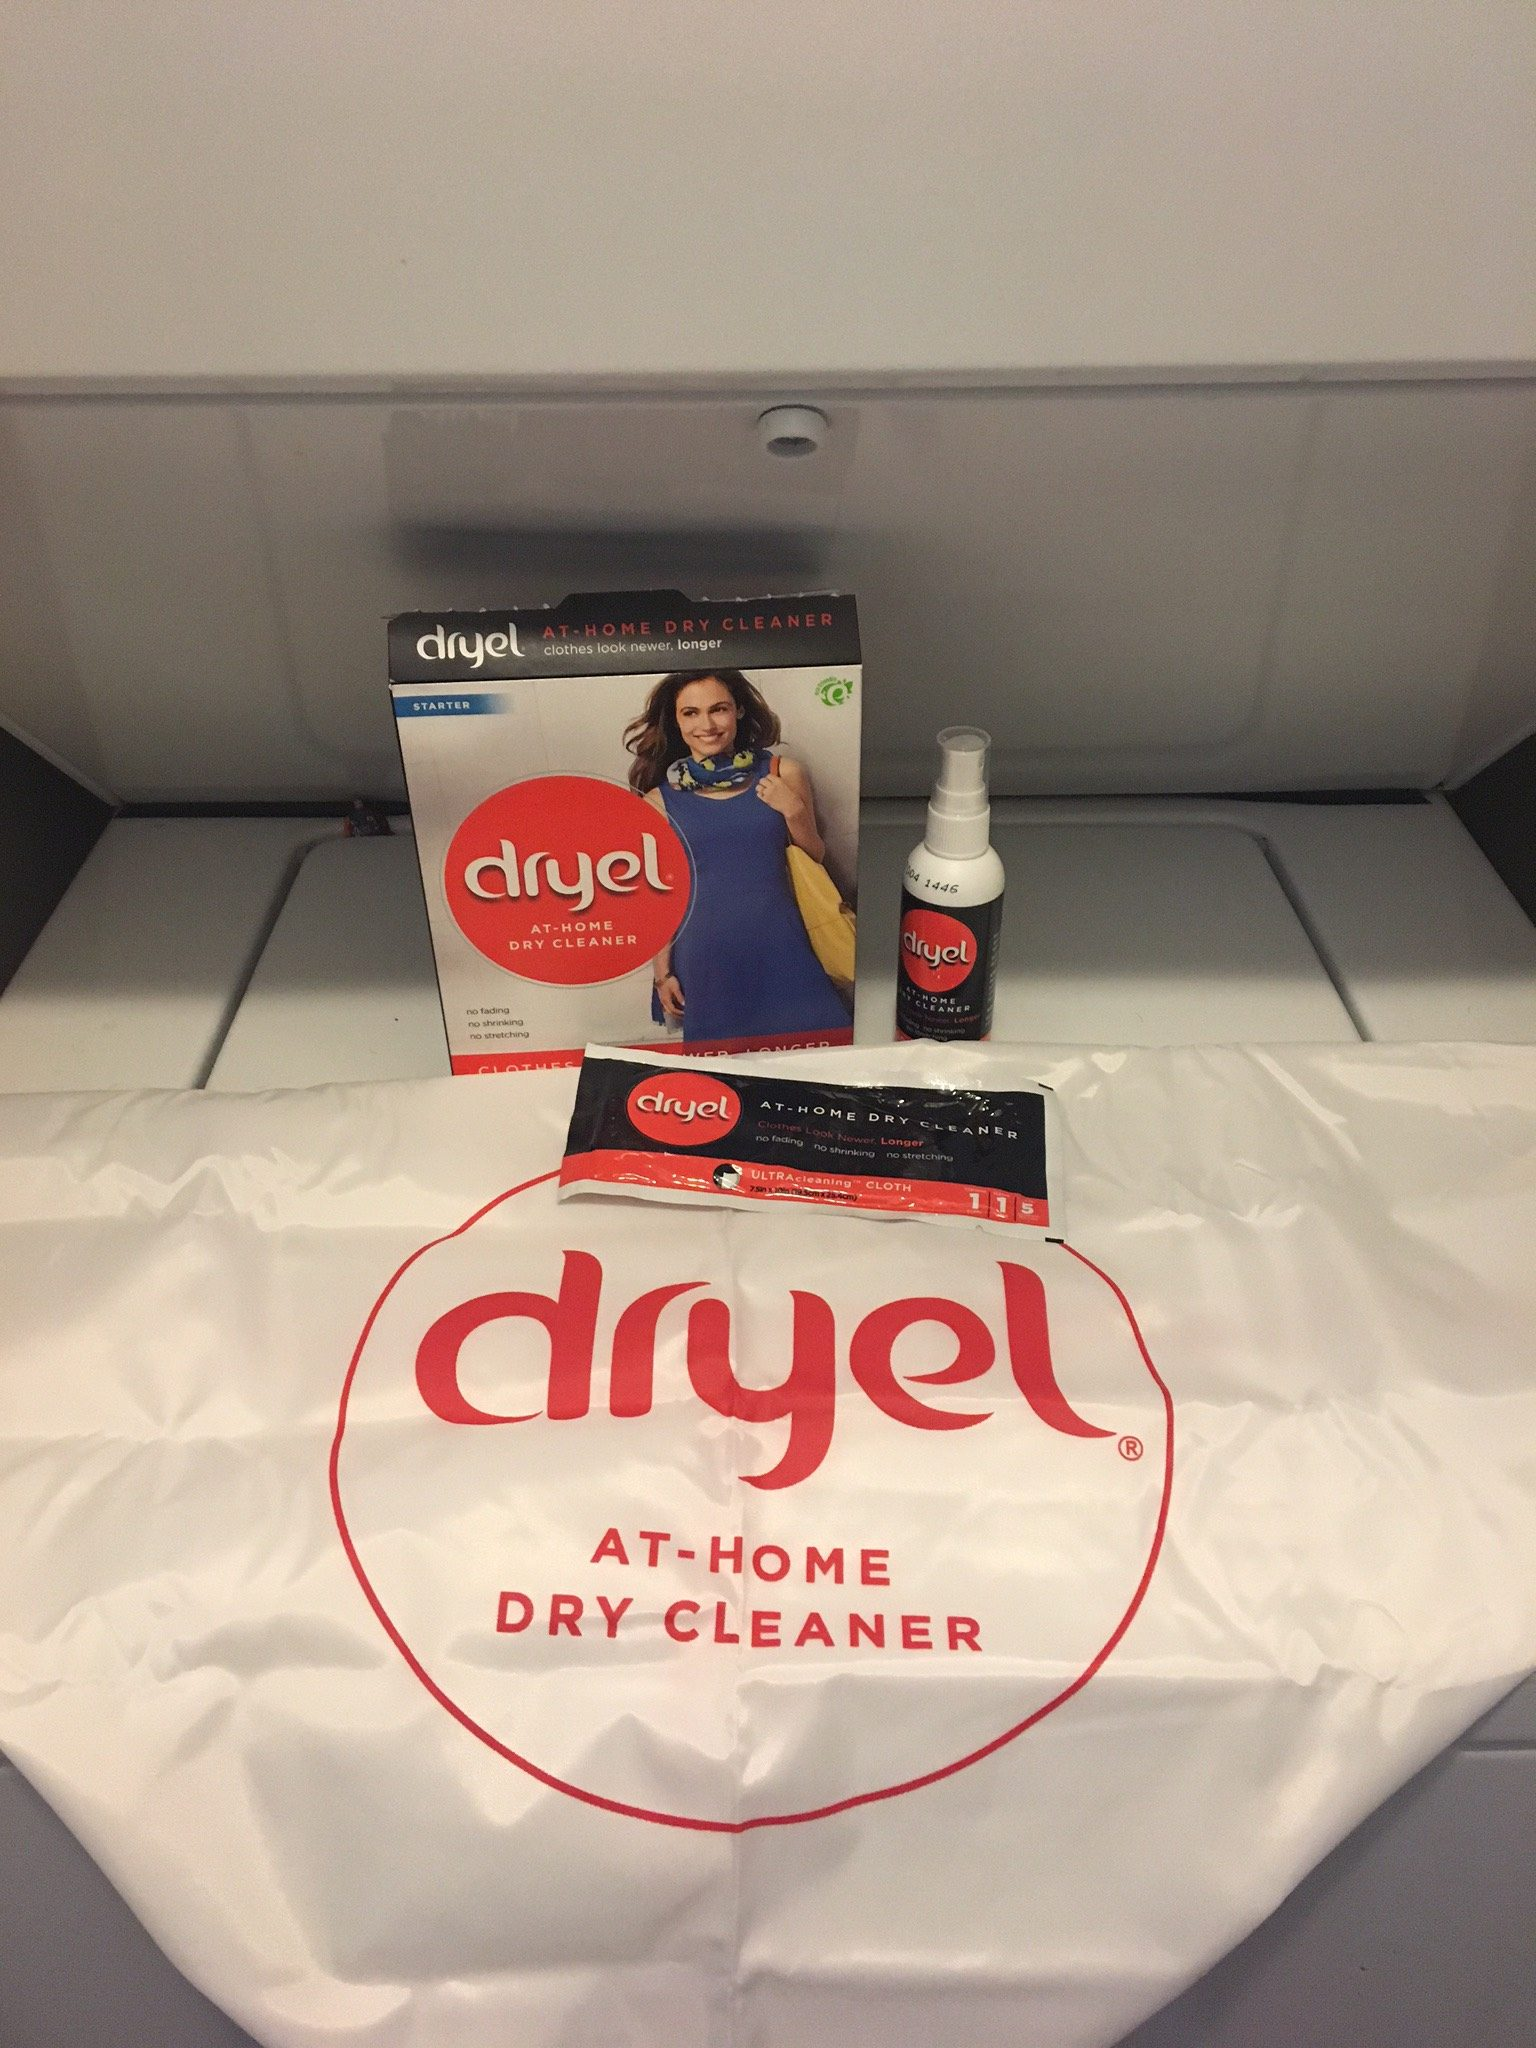 Savings: Dryel is a Fraction of the Cost of Dry Cleaners! 4 Ways to Save!